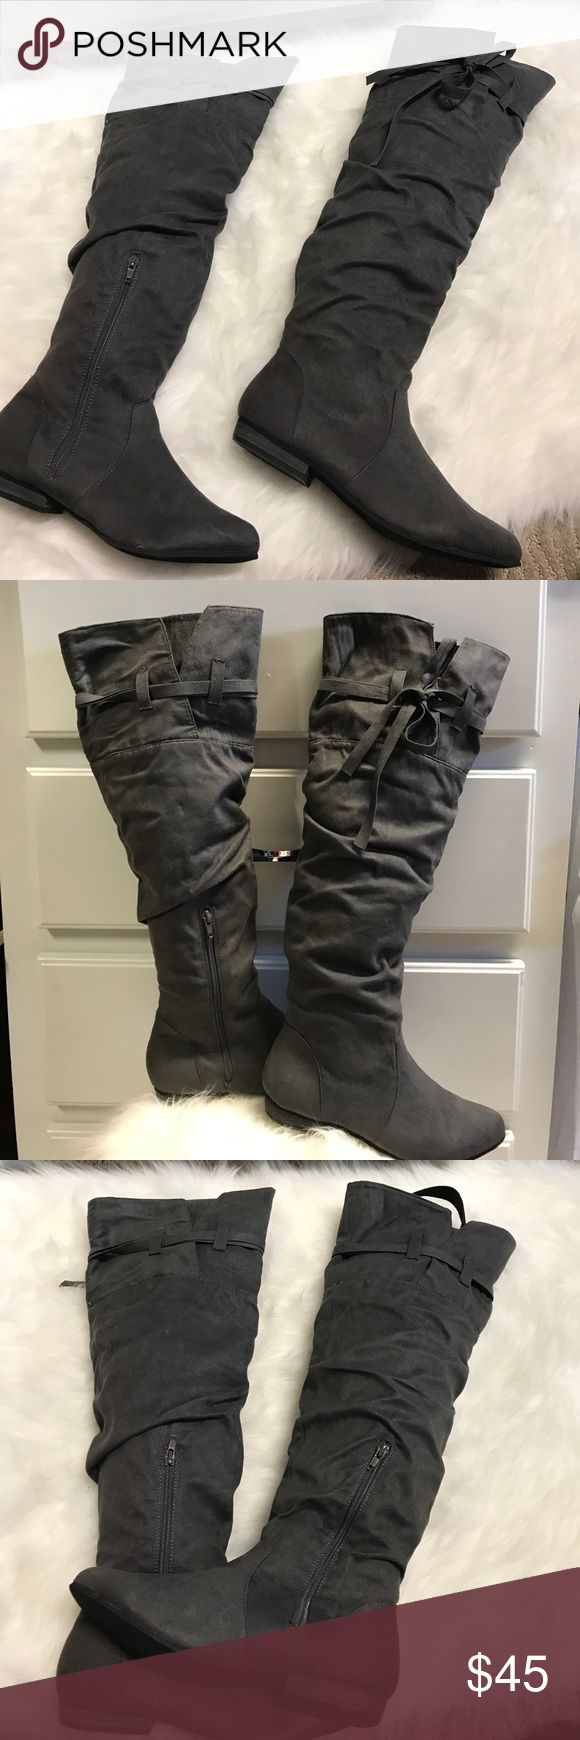 Not Rated OMG Over-the-Knee Boots Only worn once!!! With box! Not Rated OMG women's over the knee boots. Size 9 Not Rated Shoes Over the Knee Boots